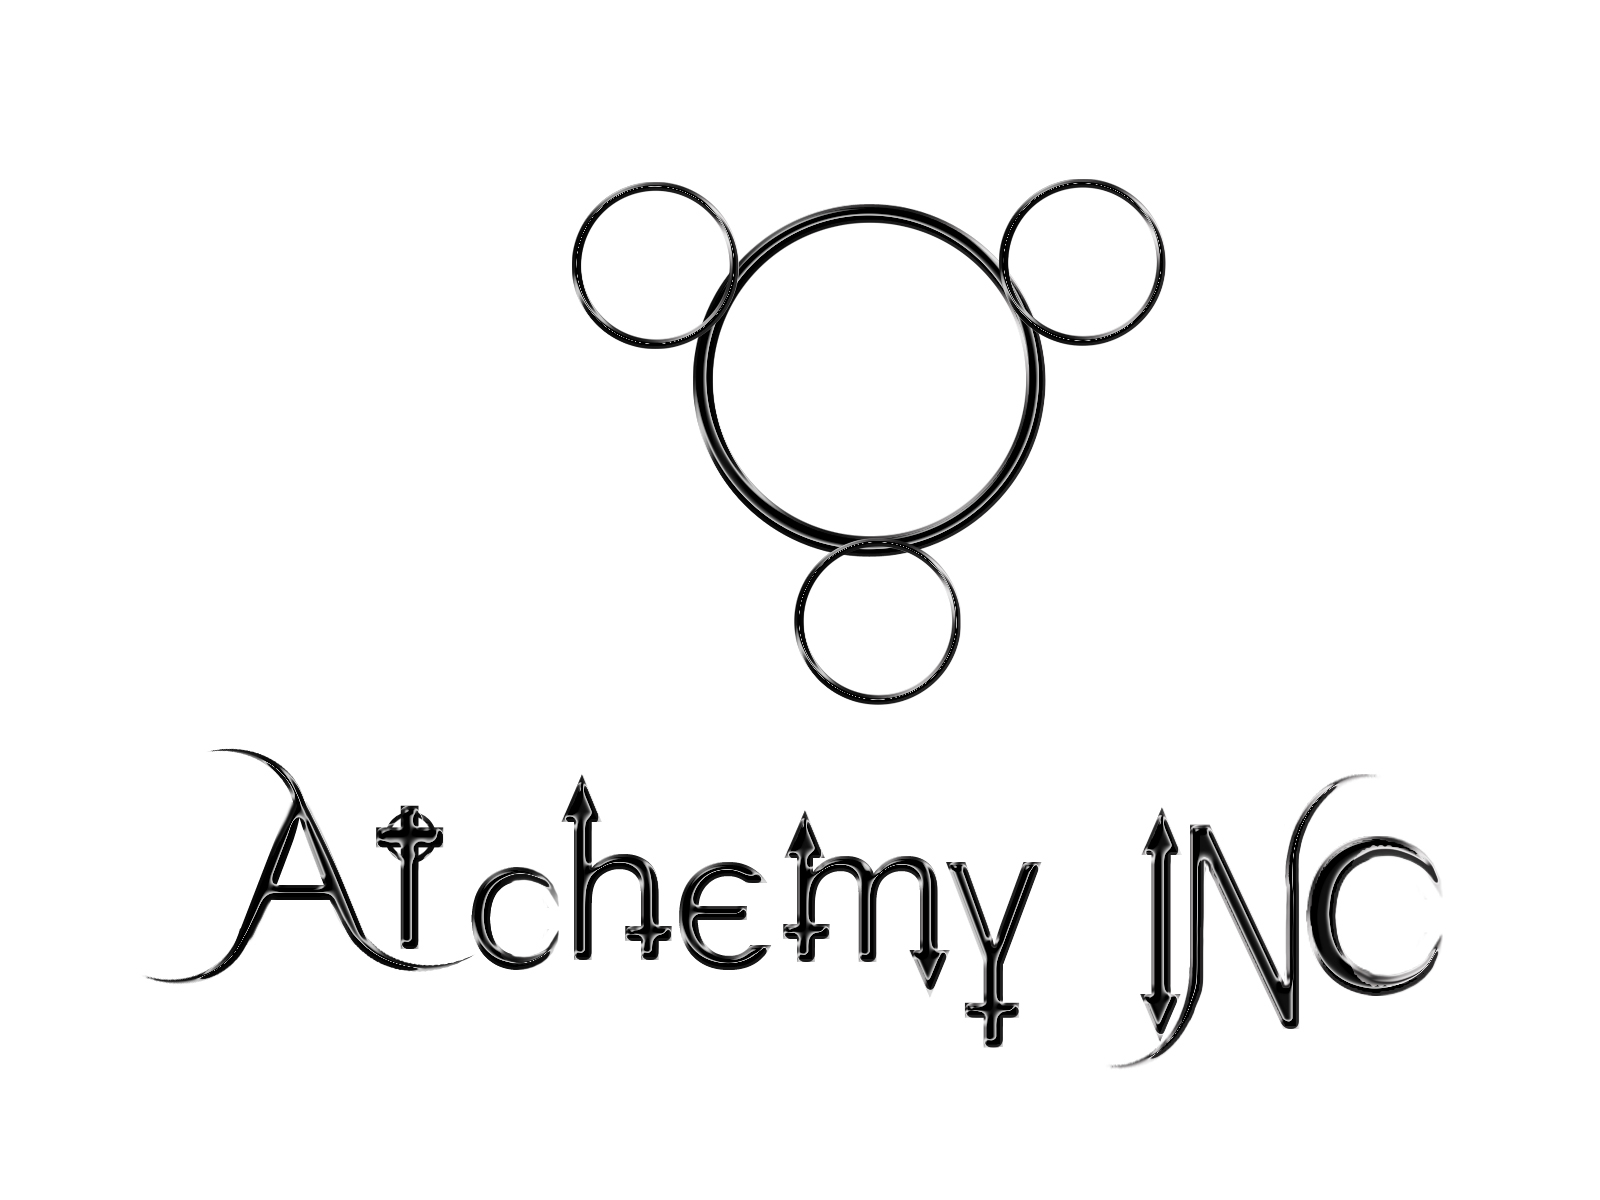 Logo Design by Mythos Designs - Entry No. 42 in the Logo Design Contest Logo Design for Alchemy Inc (Creative/Edgy/Sophisticated).